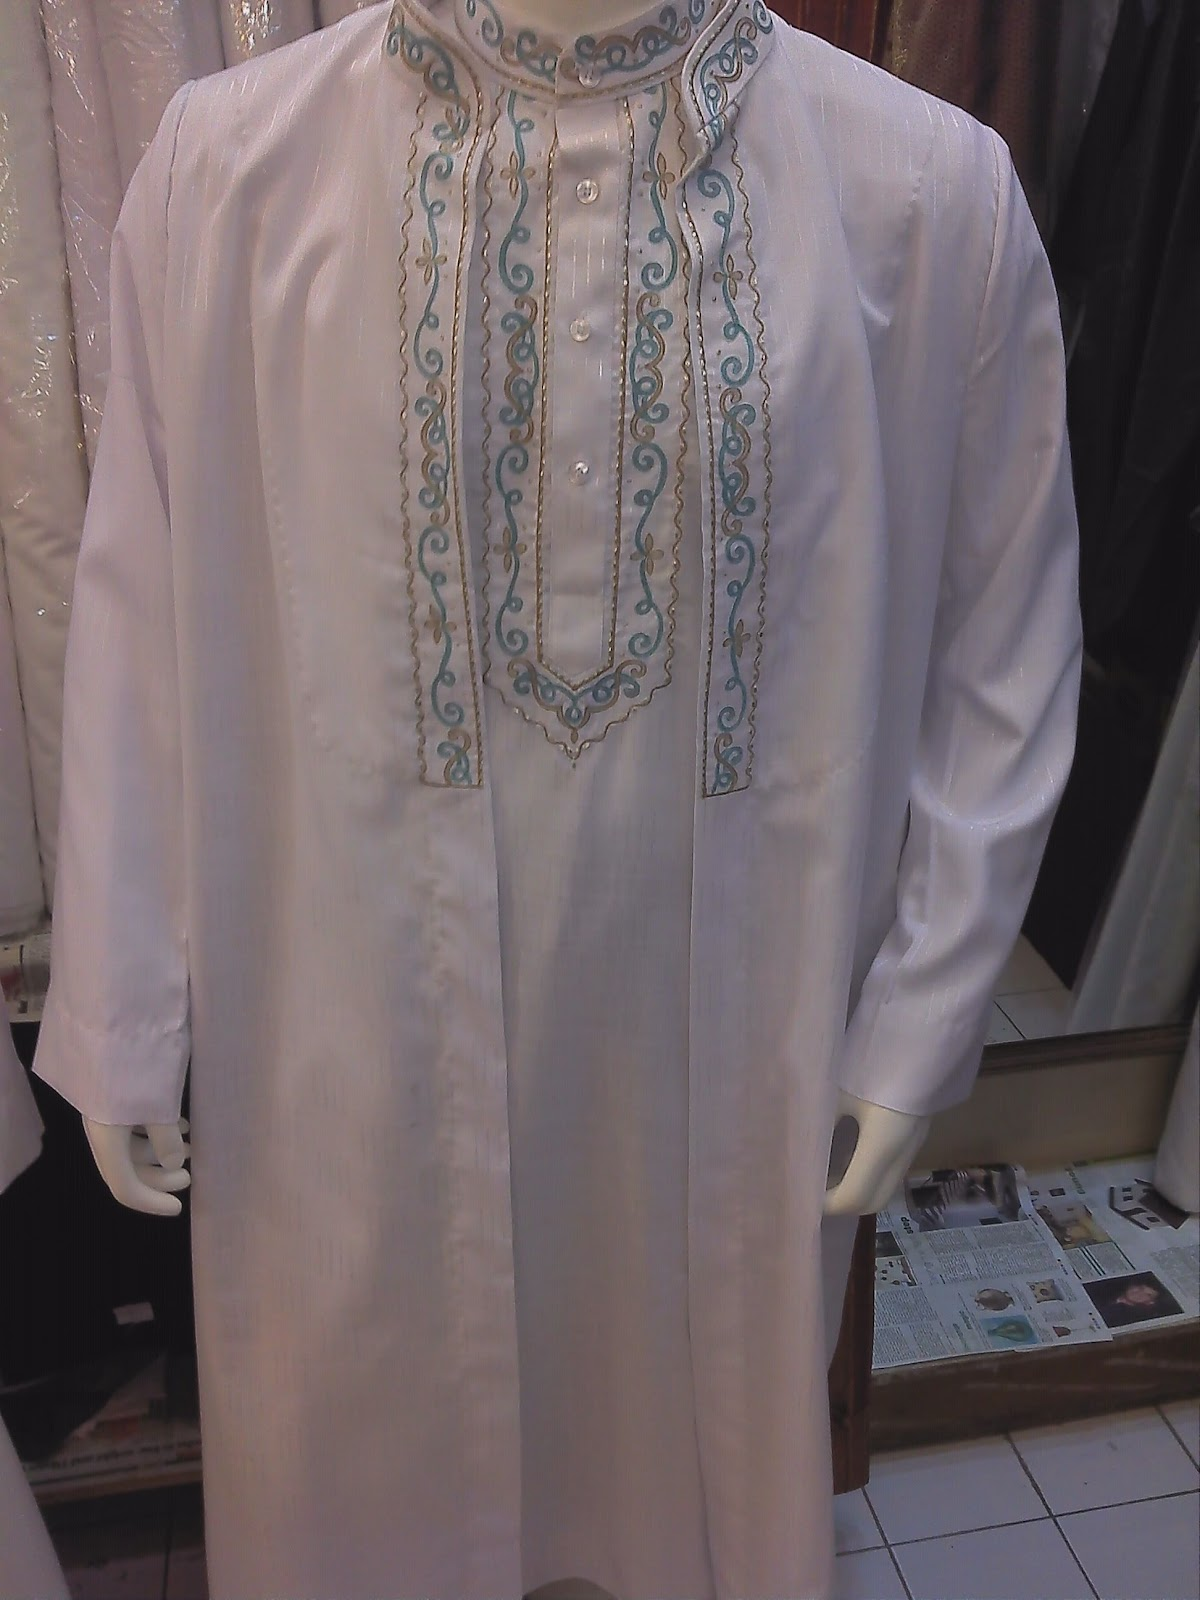 New Designs Of Ethnic Kurta Saya At The Popular Stores Pune India